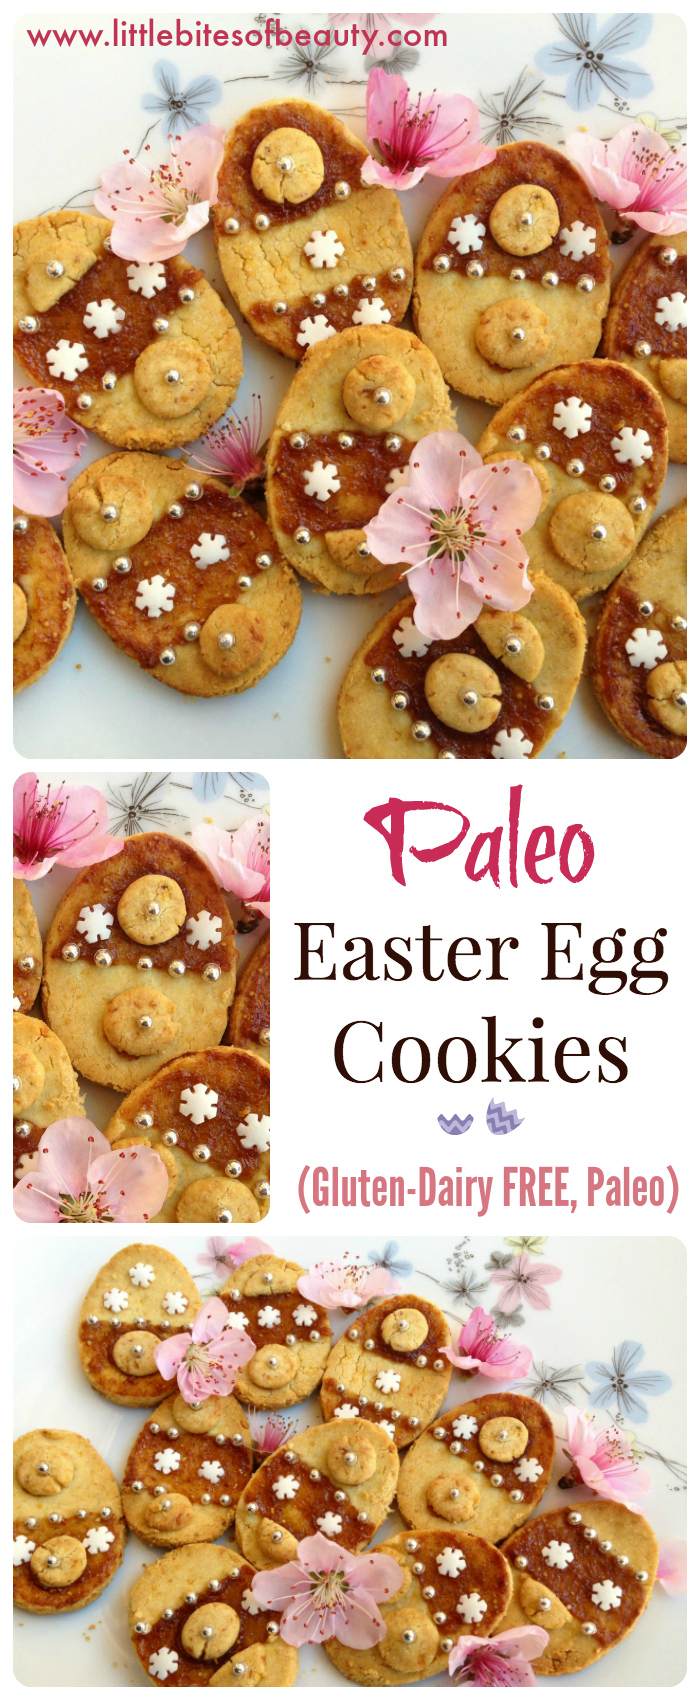 Paleo Easter Egg Cookies - Little Bites Of Beauty